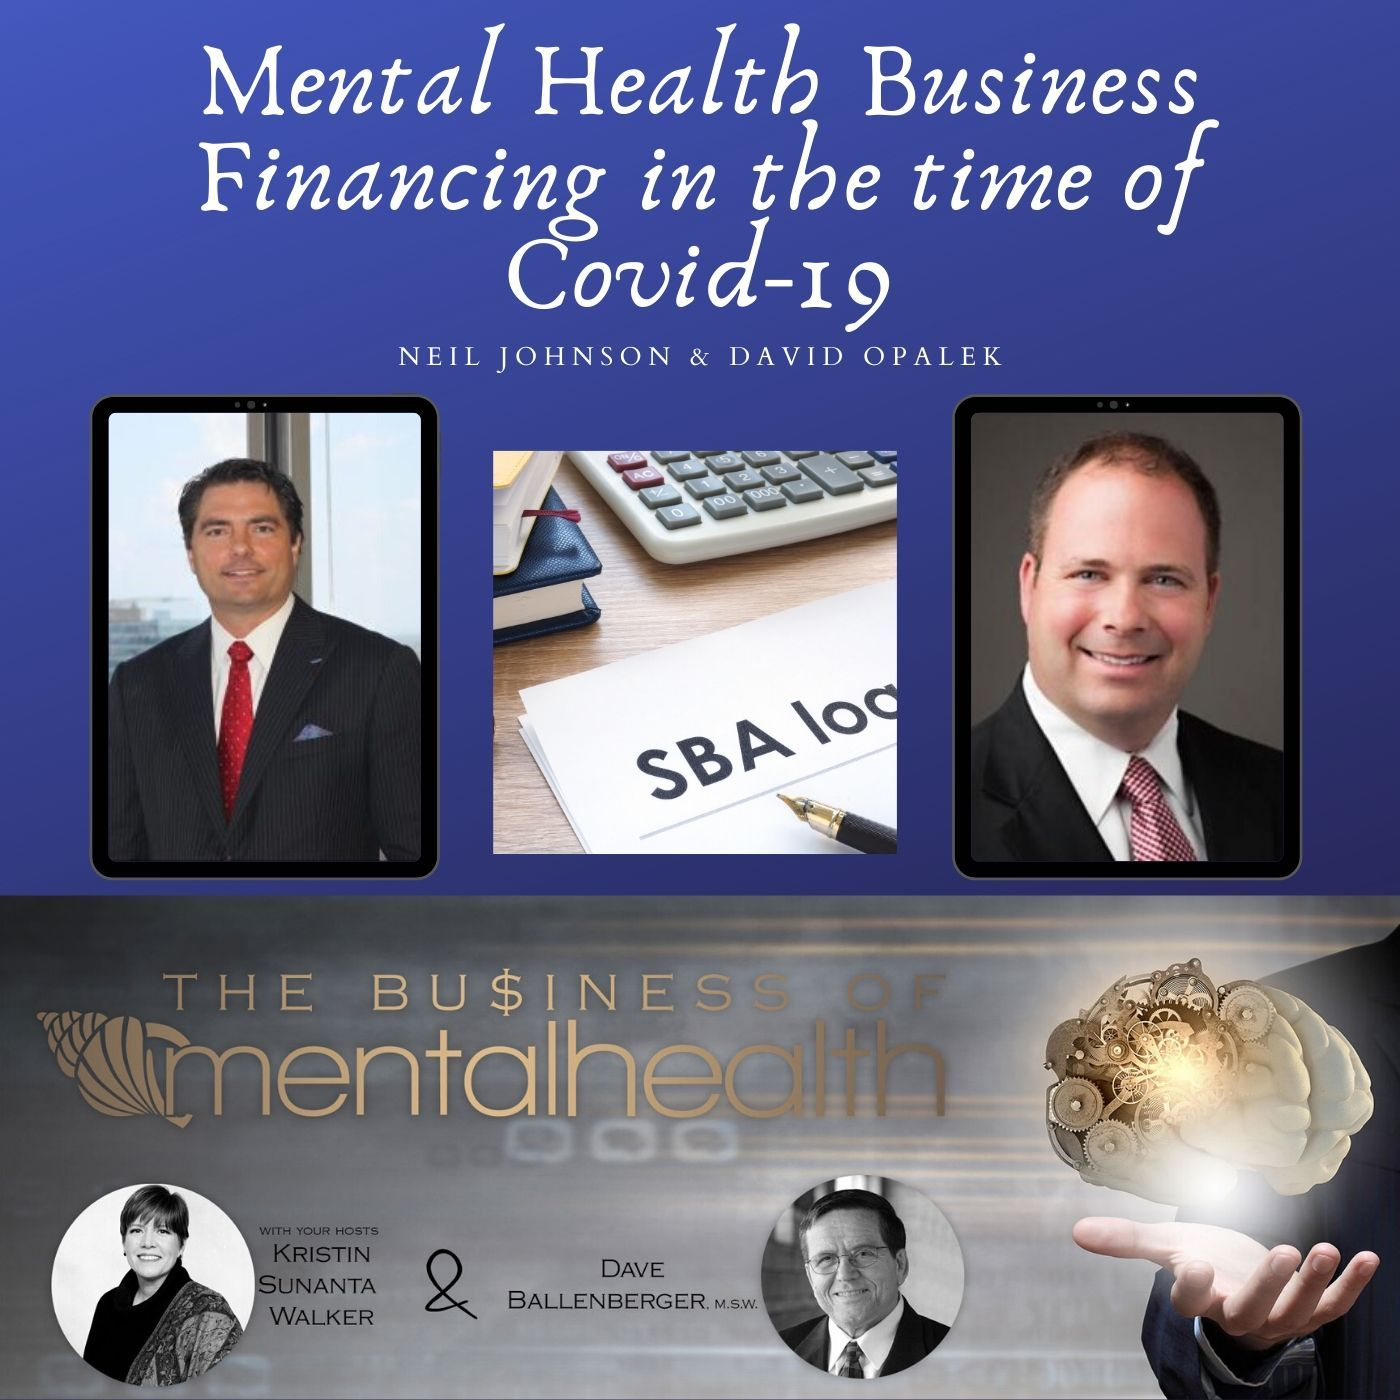 Mental Health News Radio - Mental Health Business Financing in the Time of Covid-19